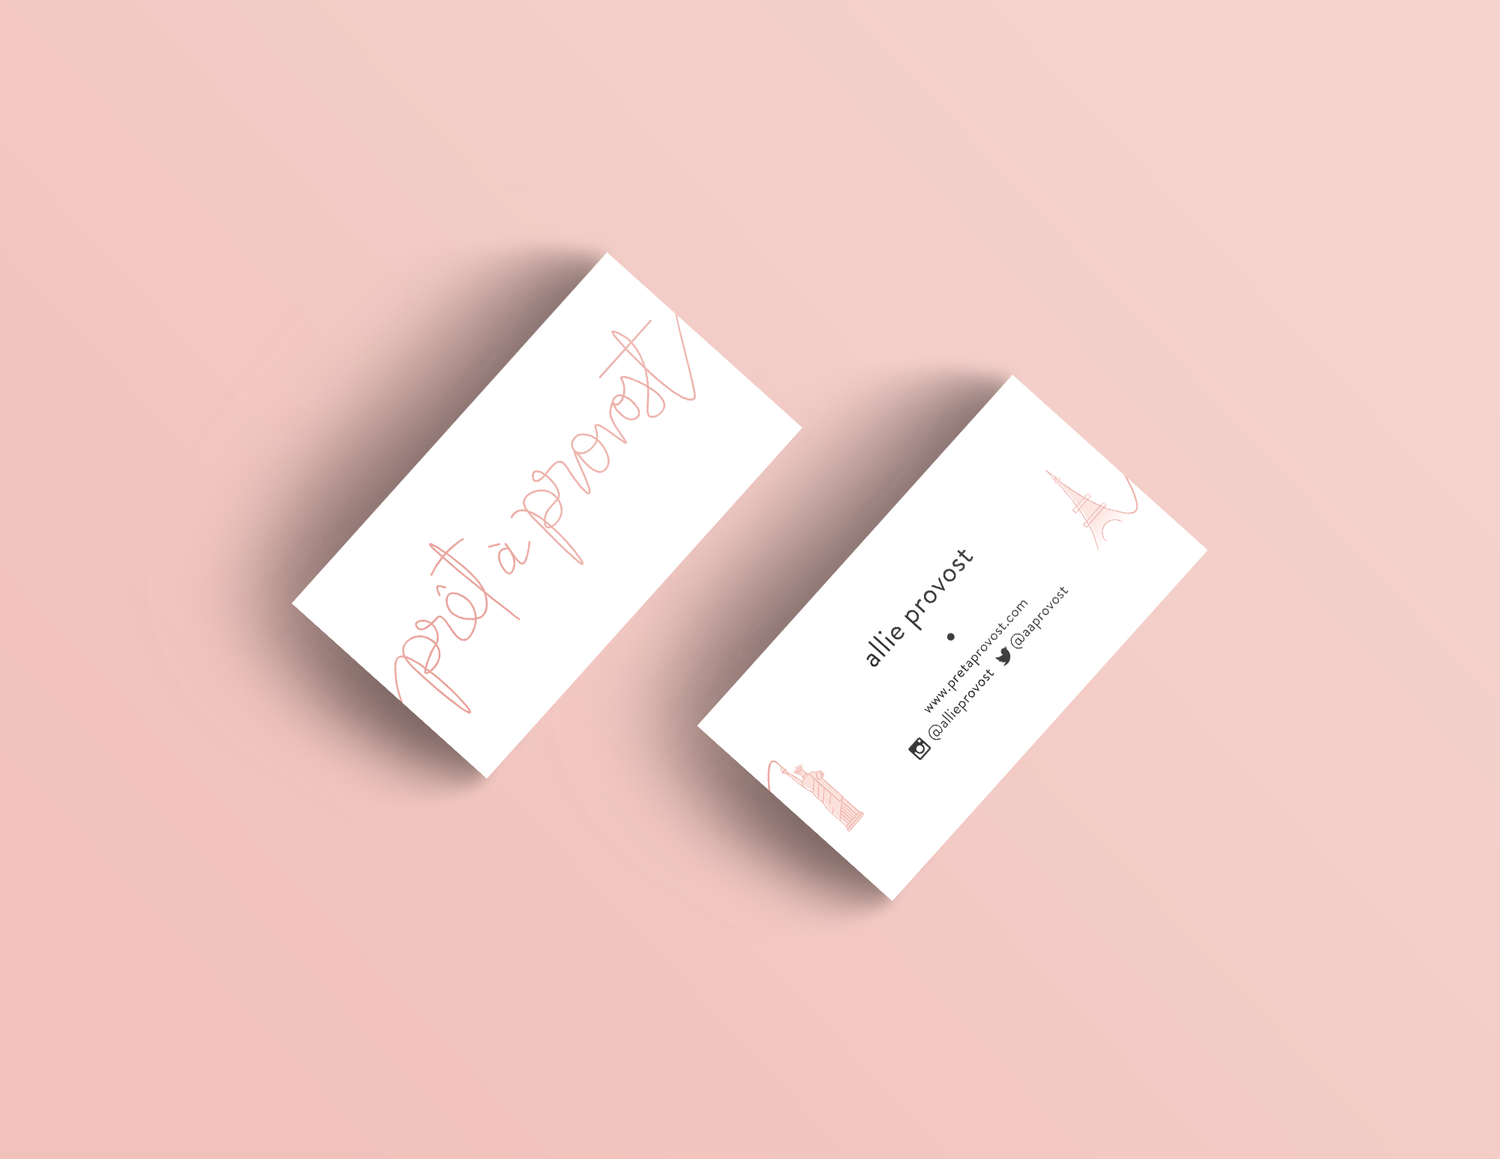 New in the portfolio prt provost reux design co pret a provost business cards fashion blogger business card design reux design co colourmoves